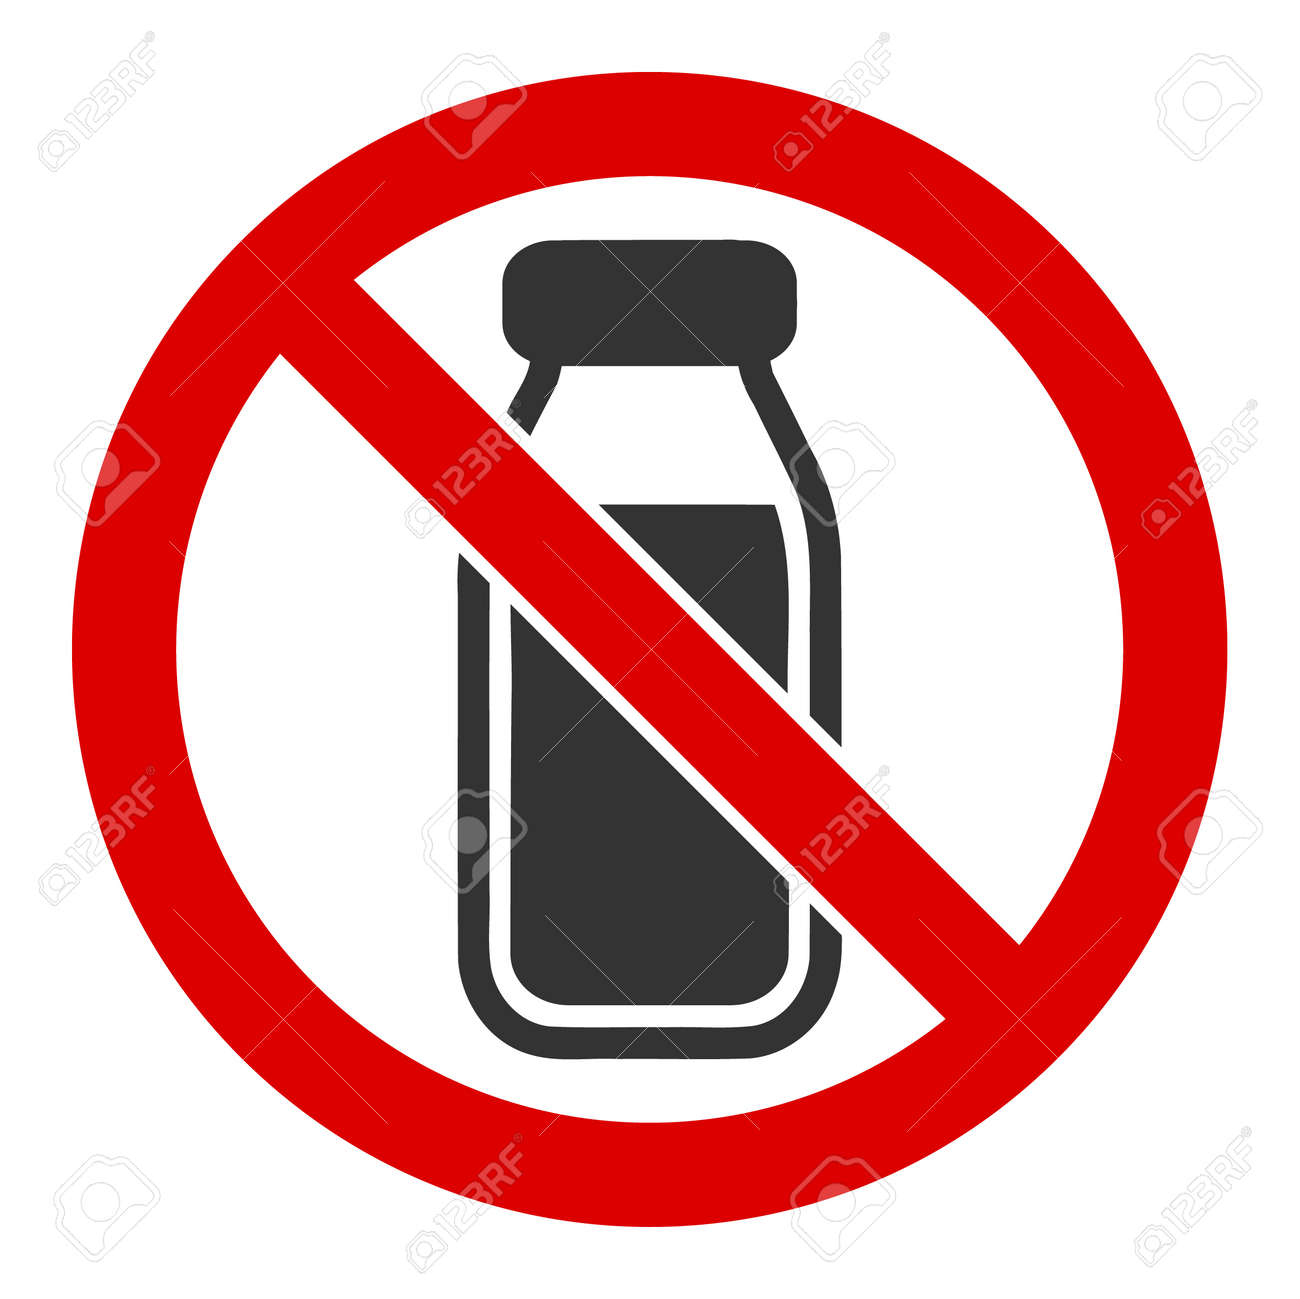 No milk bottle vector icon. Flat No milk bottle symbol is isolated on a white background. - 137263885